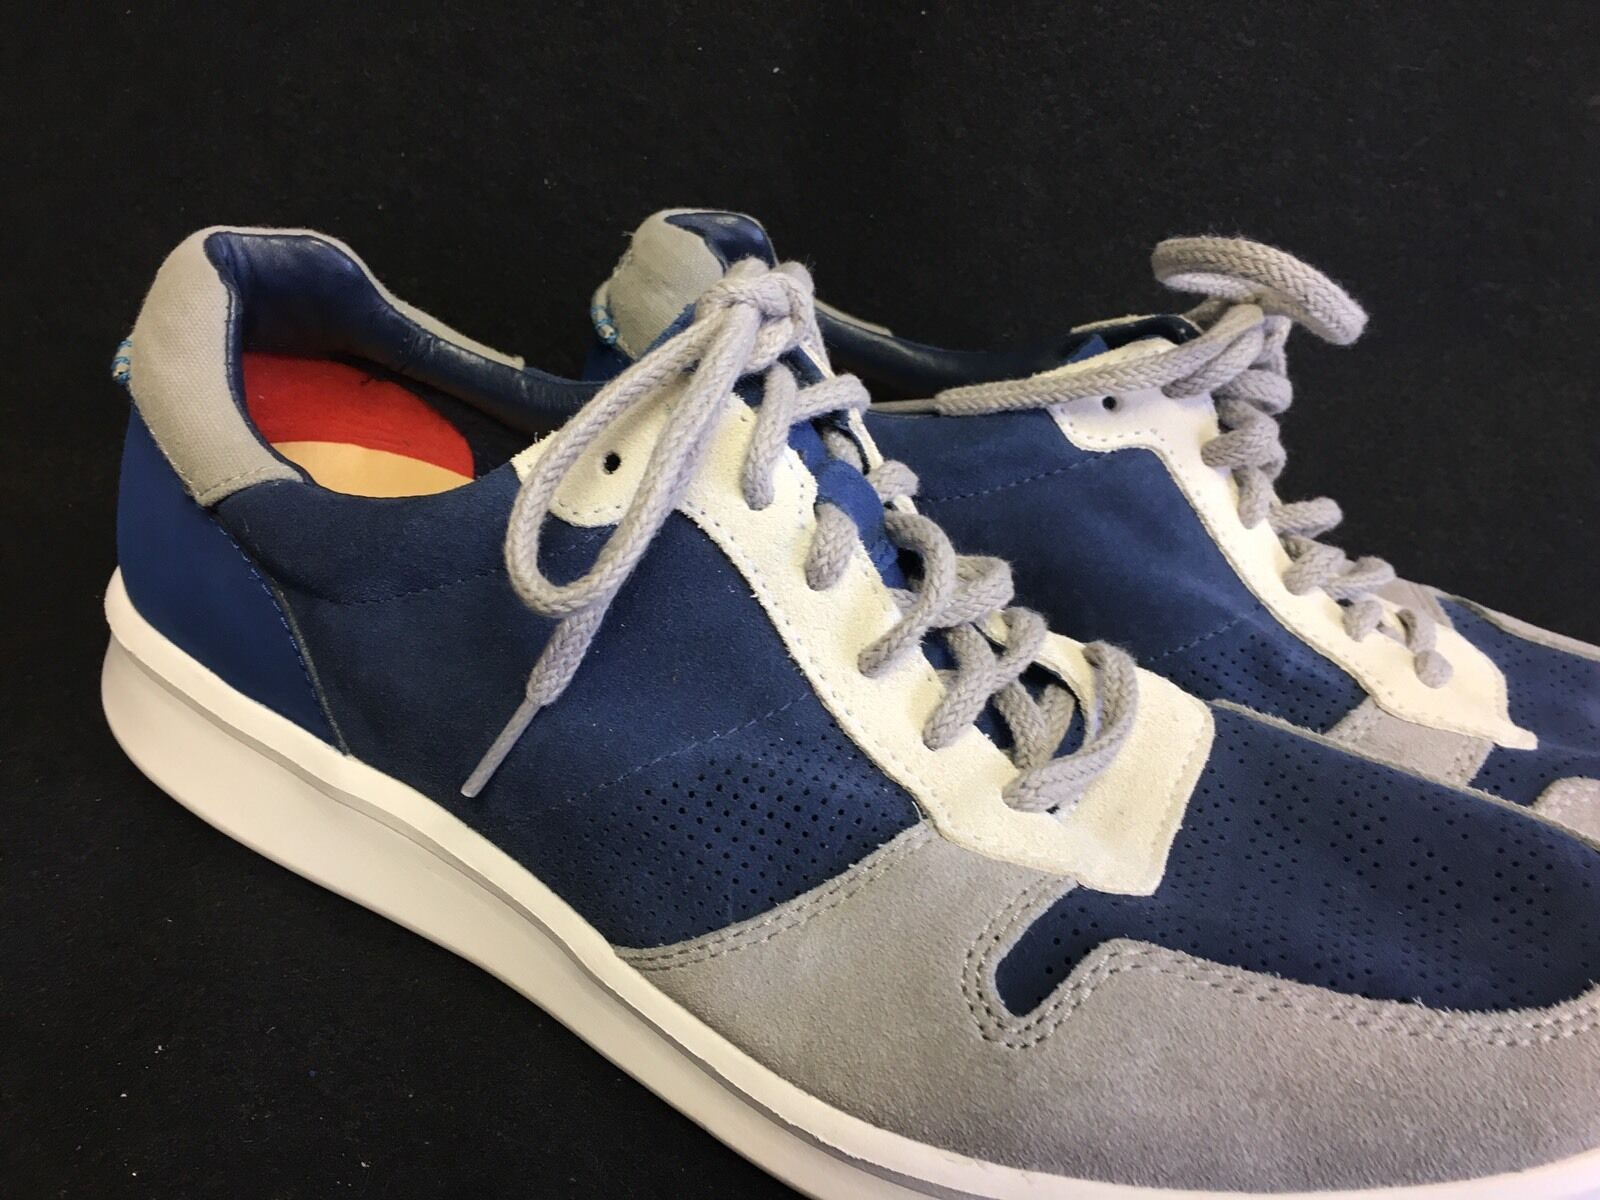 UGG SLAYTE STRIPE PERF Marino Blue LEATHER SNEAKER SHOES MENS SIZE 11.5 US